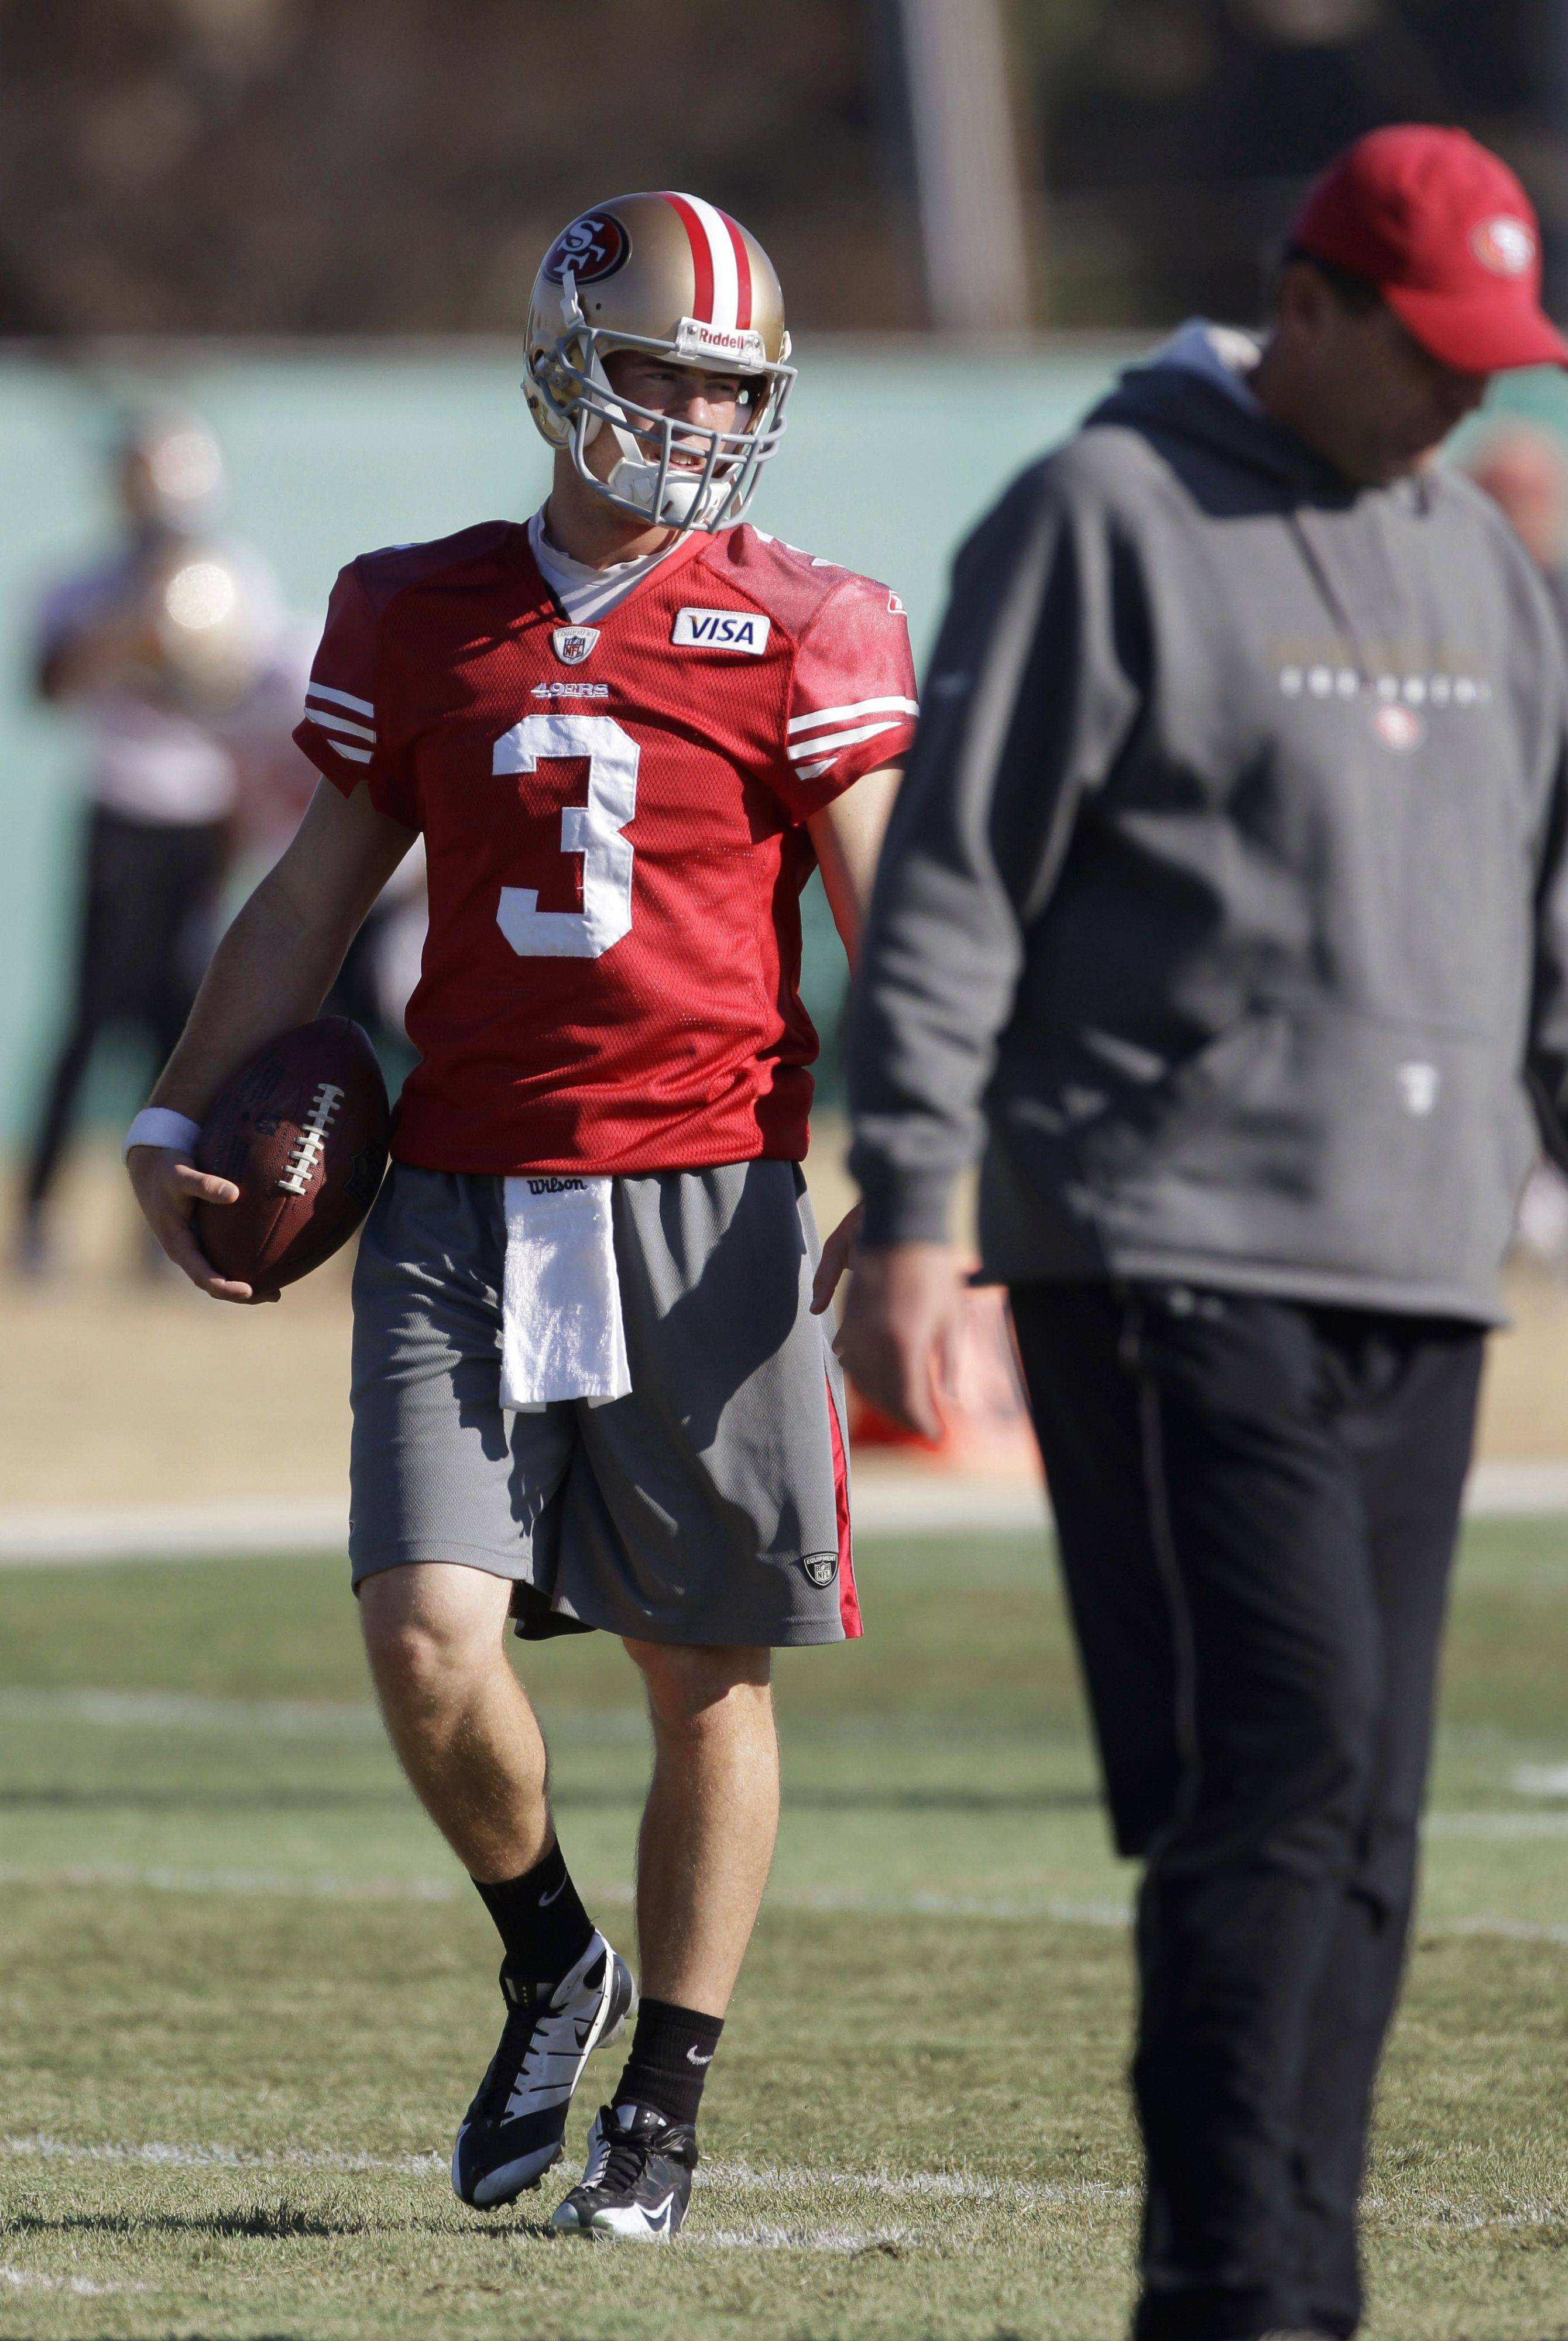 Scott Tolzien, a Rolling Meadows resident and Fremd High School grad, is the No. 3 quarterback for the San Francisco 49ers. This week he played Drew Brees in practice for the scout team as the 49ers prepare to play the New Orleans Saints.